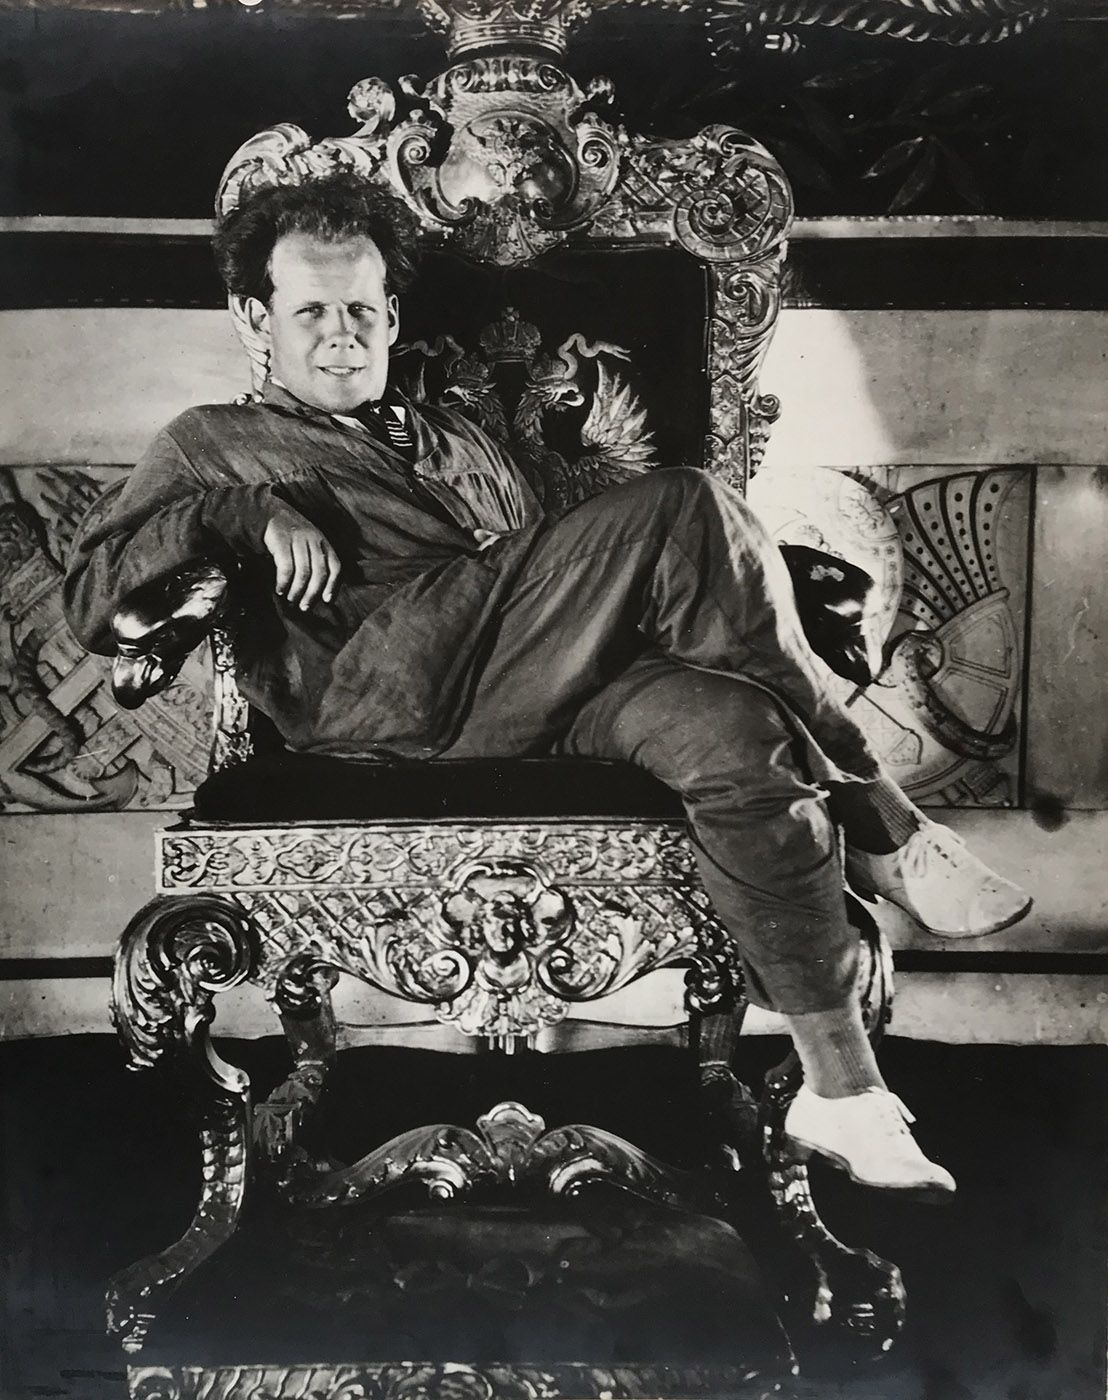 Attributed to Alexander Sigaev (1893-1973)  Sergei Eisenstein enthroned during the production of October (1928), 1927  Vintage gelatin silver print  20 x 15 3/4 in. (50.8 x 40.0 cm)